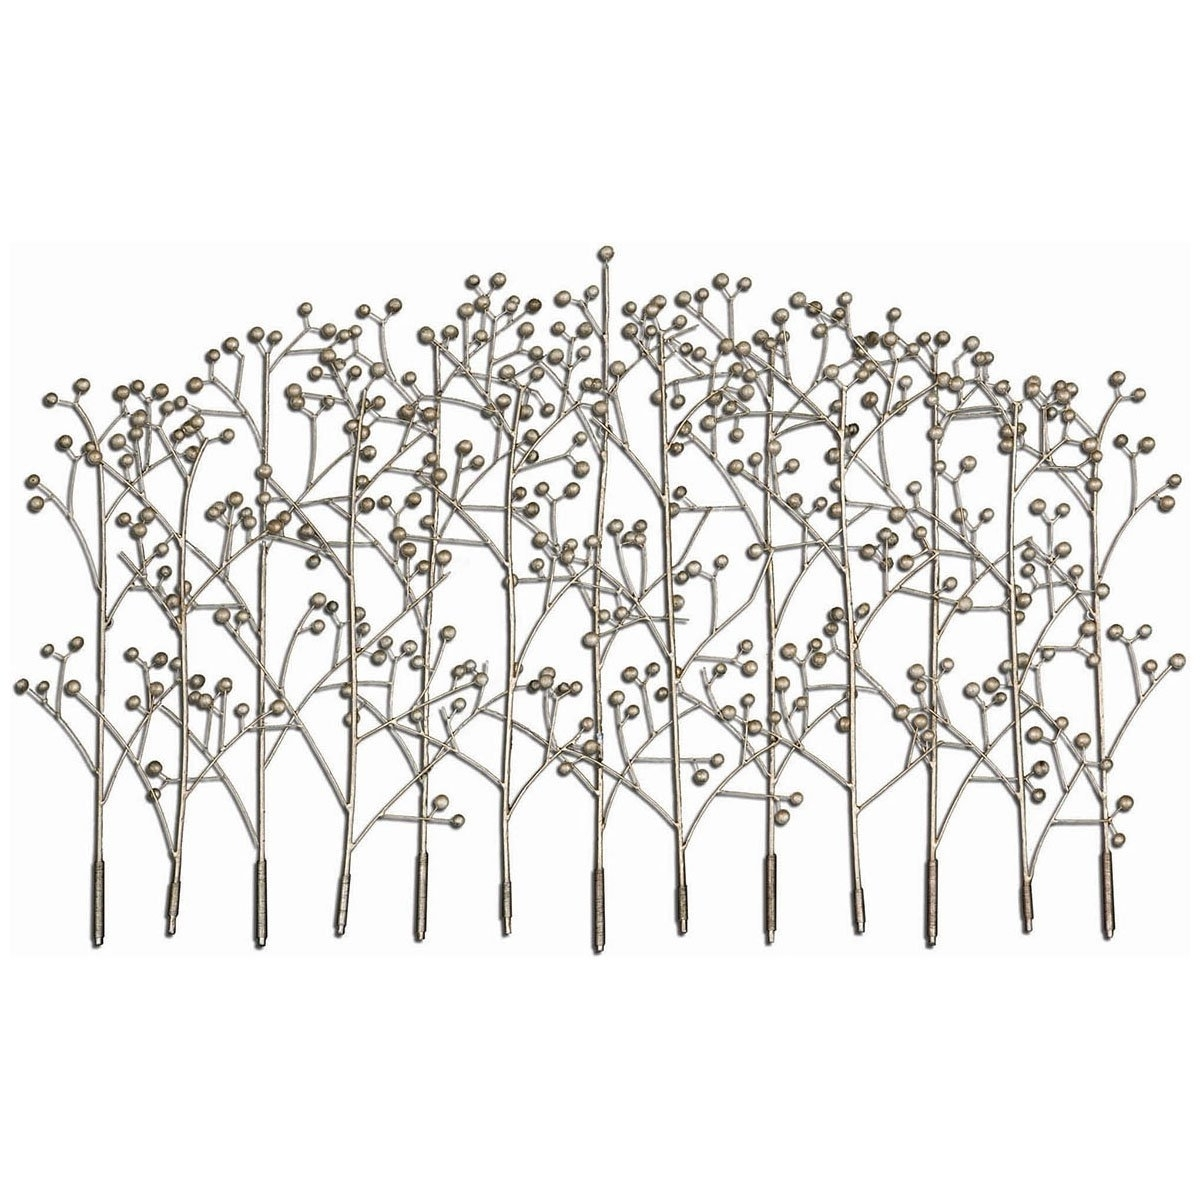 Newest Wrought Iron Tree Wall Art Pertaining To Amazon: Uttermost 05018 Iron Trees Metal Wall Art: Wall (View 7 of 15)